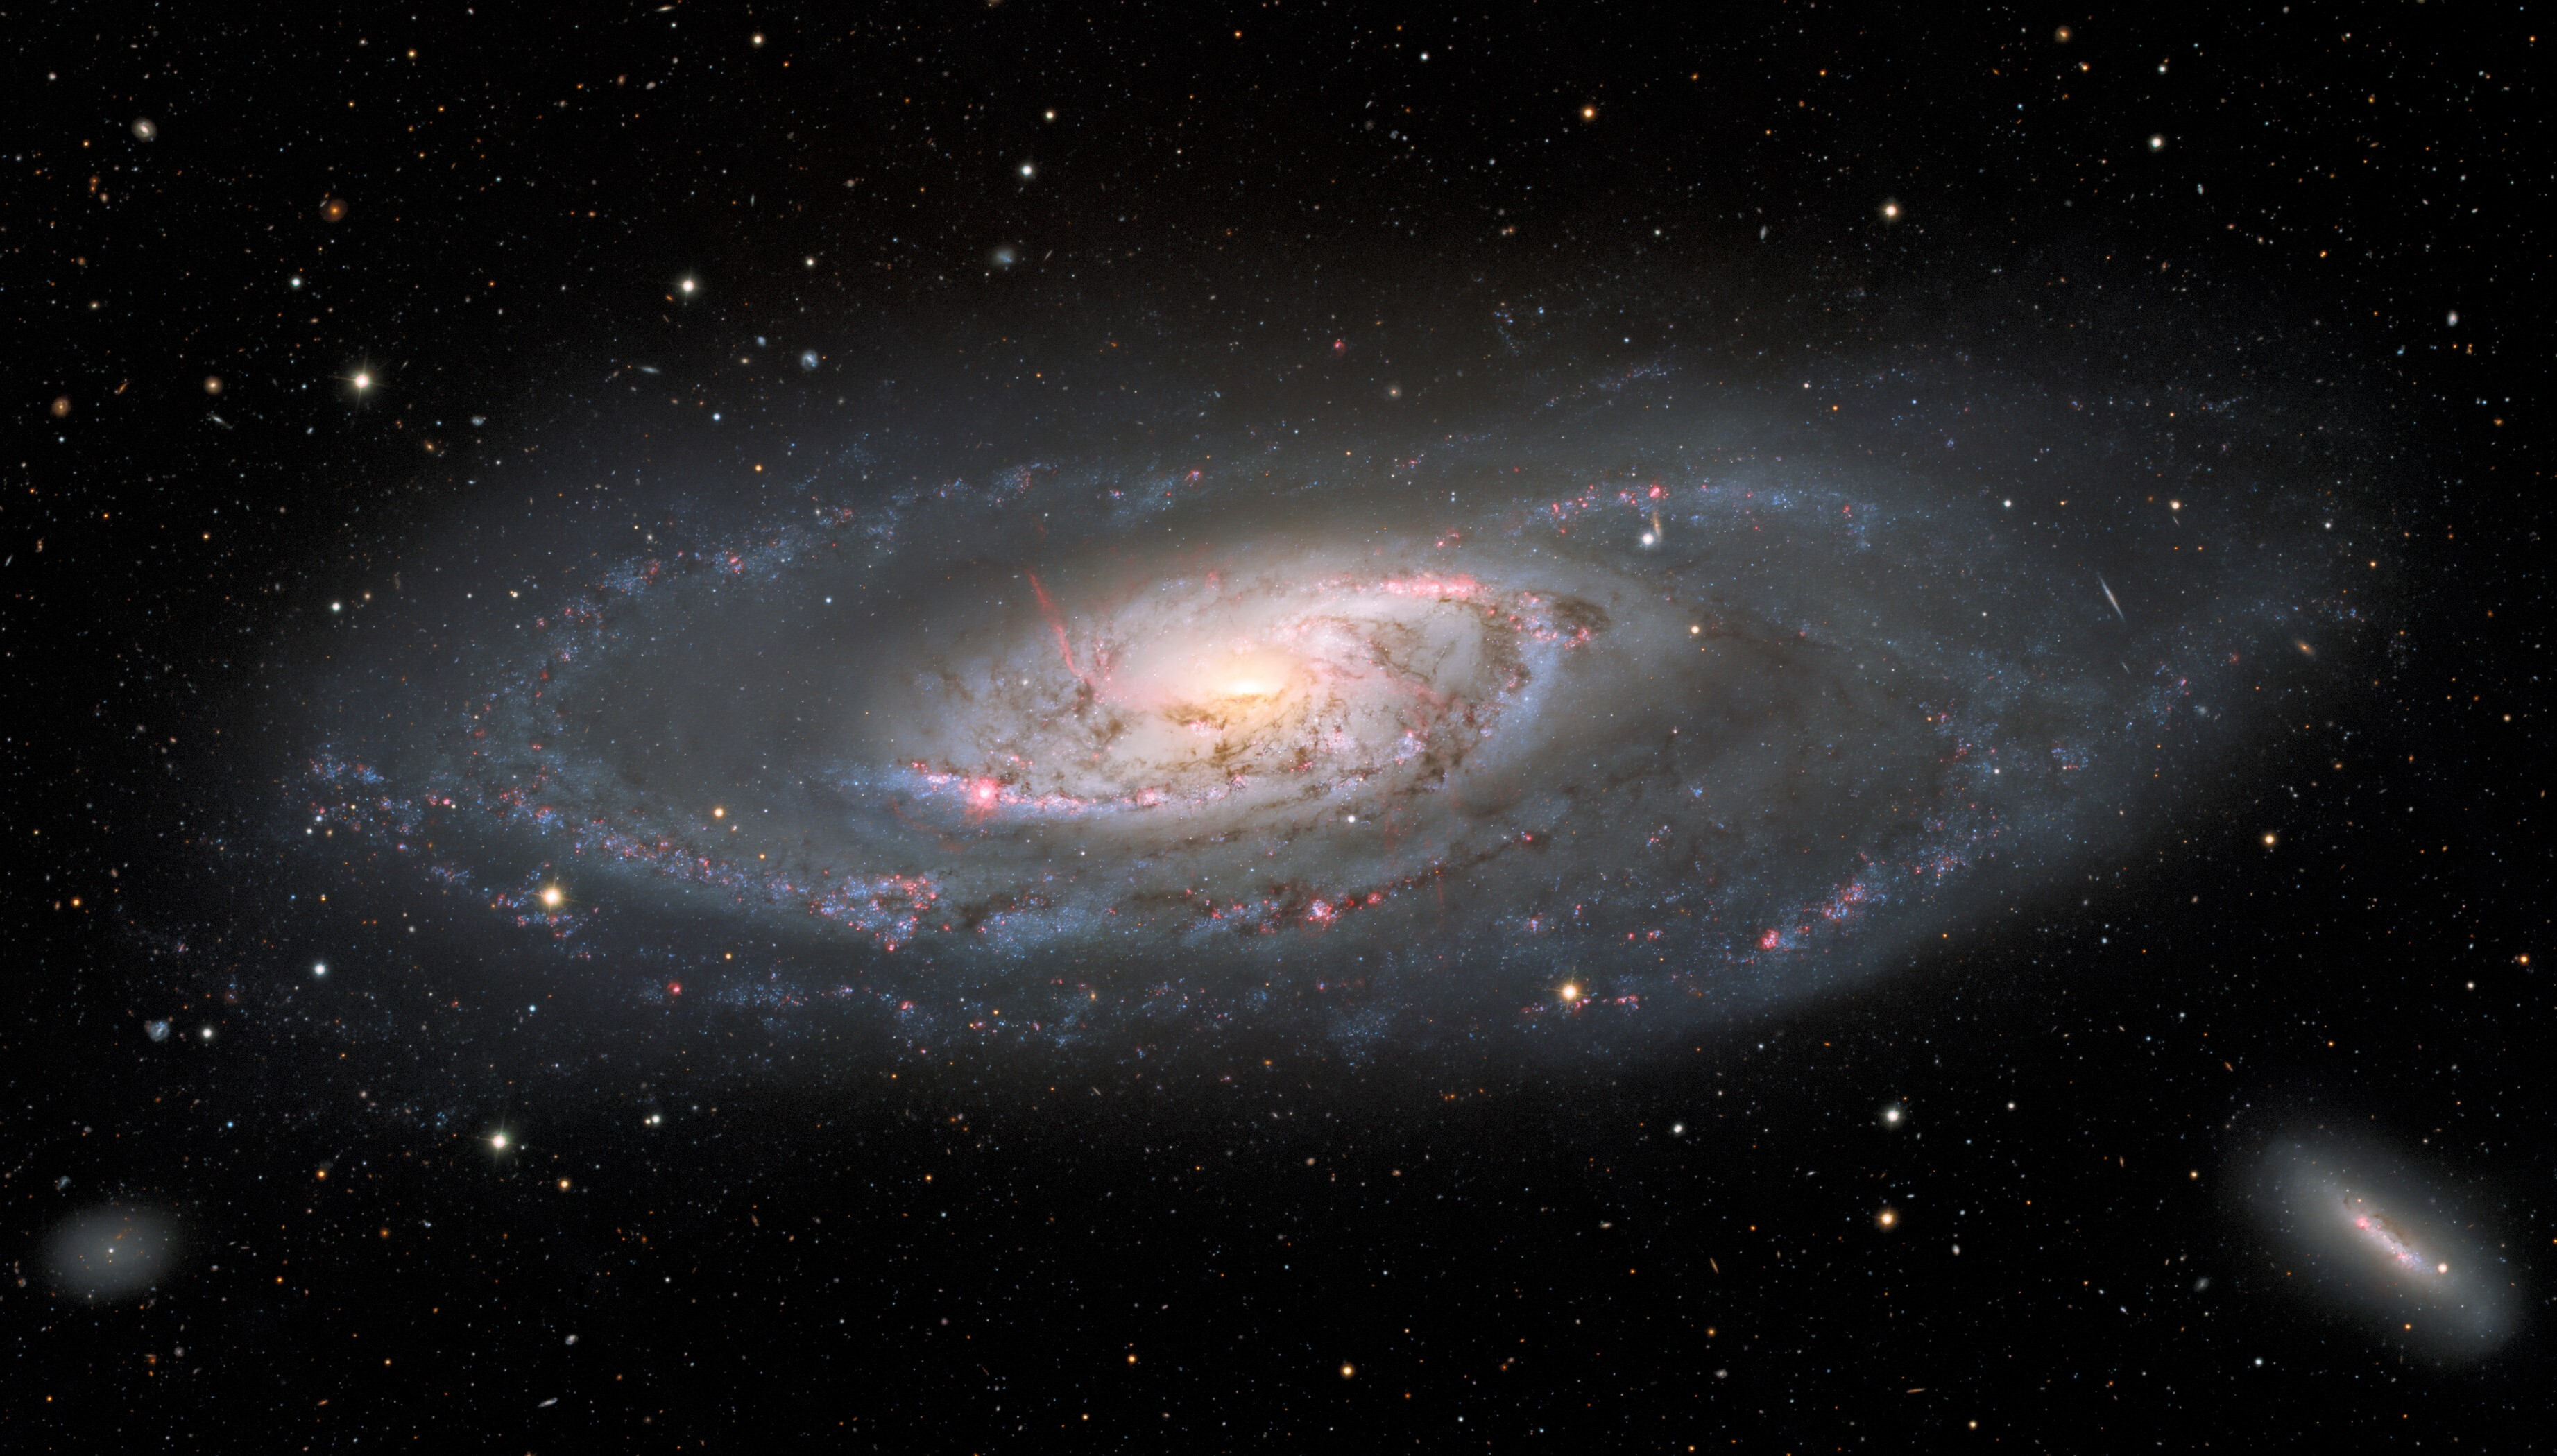 New view of Messier 106